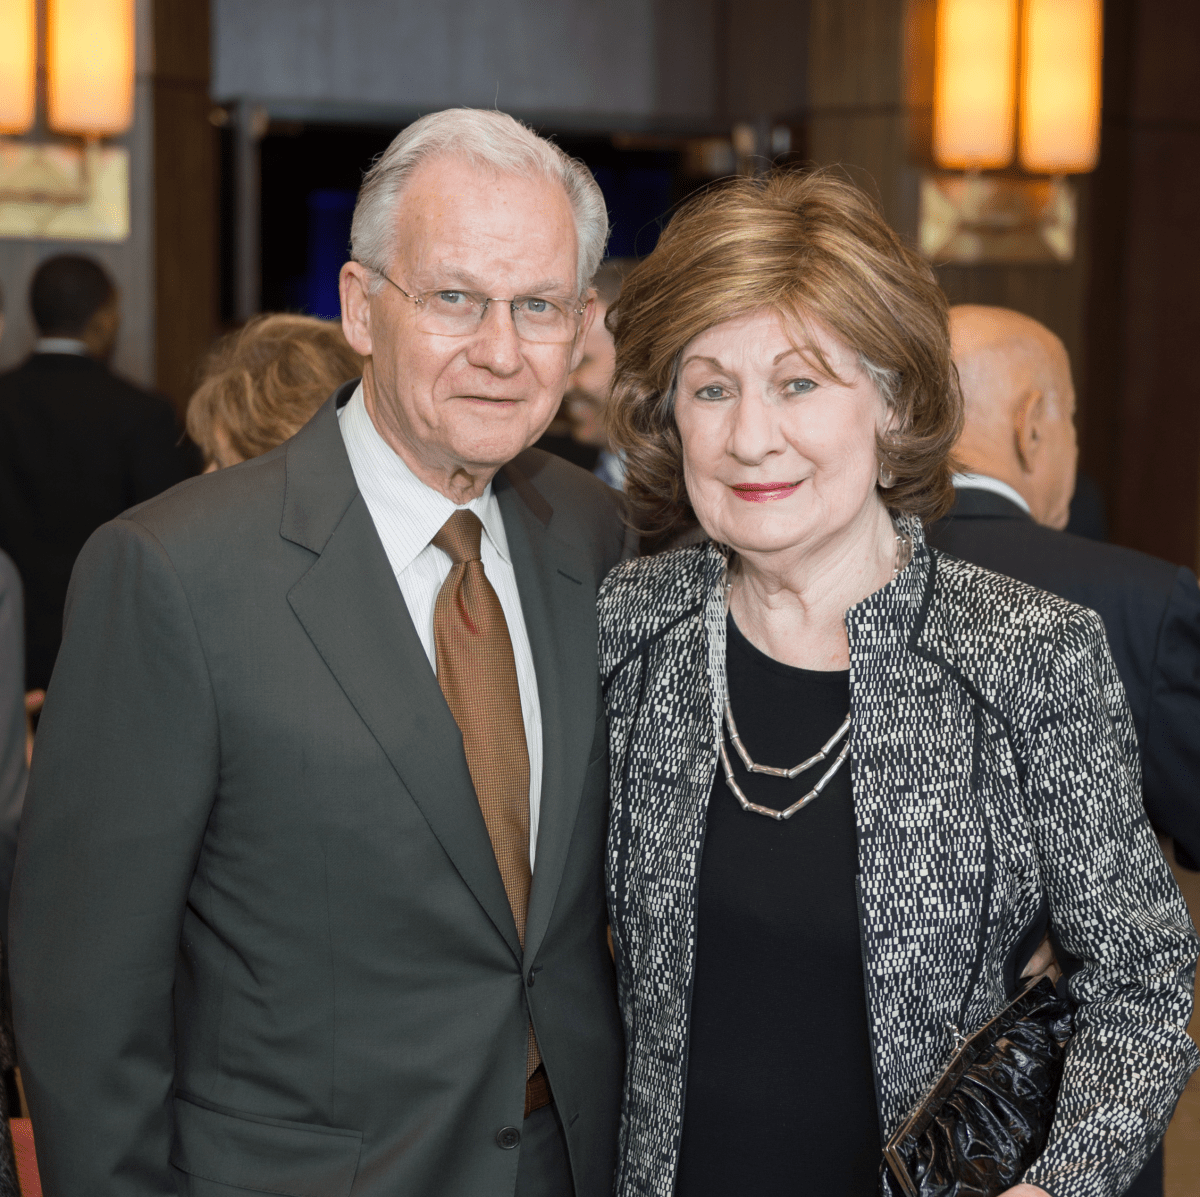 News, Shelby, Holocaust museum luncheon, Nov. 2015, Harry Mach, Cora Sue Mach